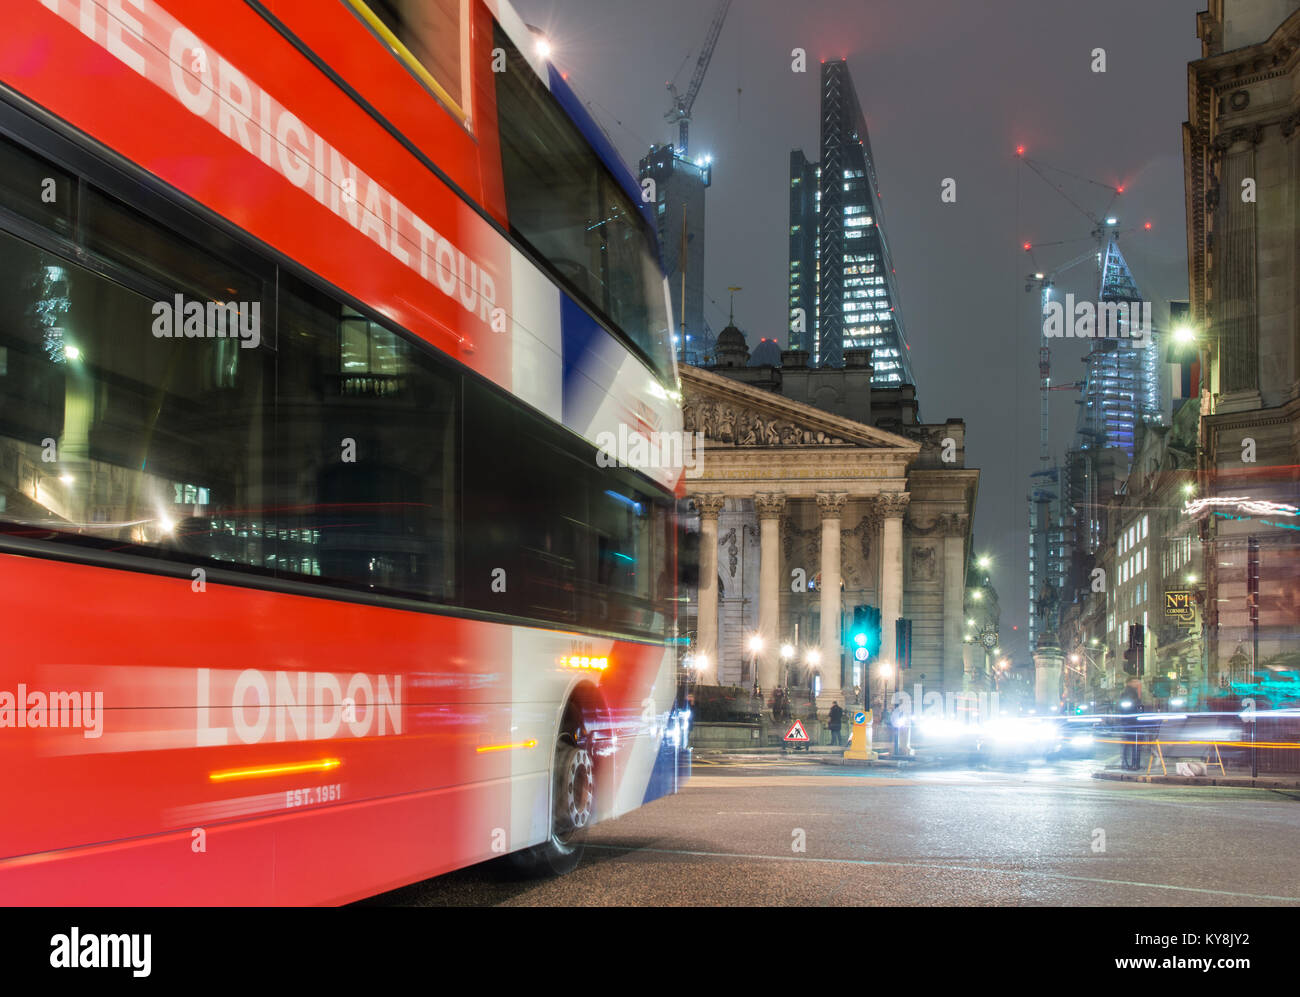 London, England, UK - January 11, 2018: A double-decker tour bus passes through Bank Junction in the City of London, - Stock Image